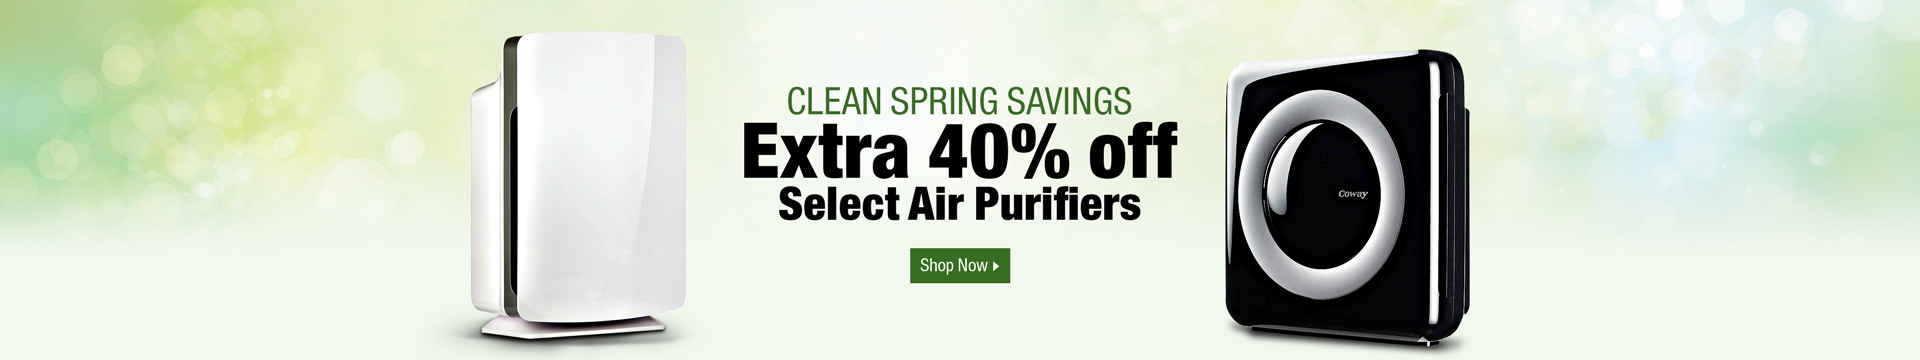 Extra 40% off select air purifiers